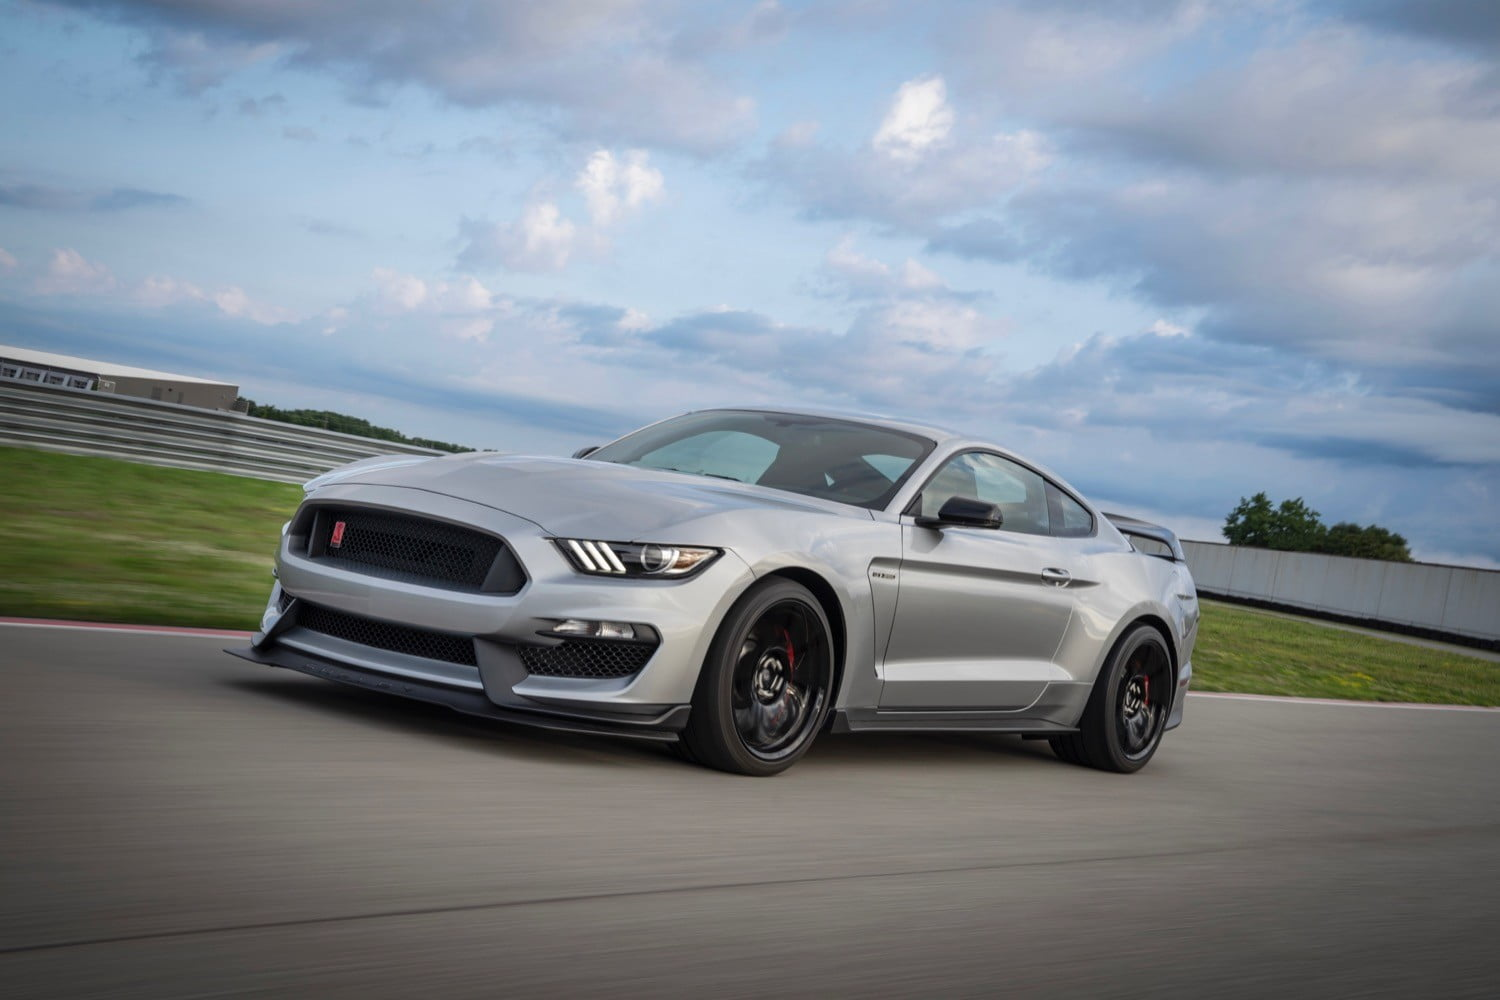 The 2020 Ford Shelby Mustang GT350R remains hilariously hardcore